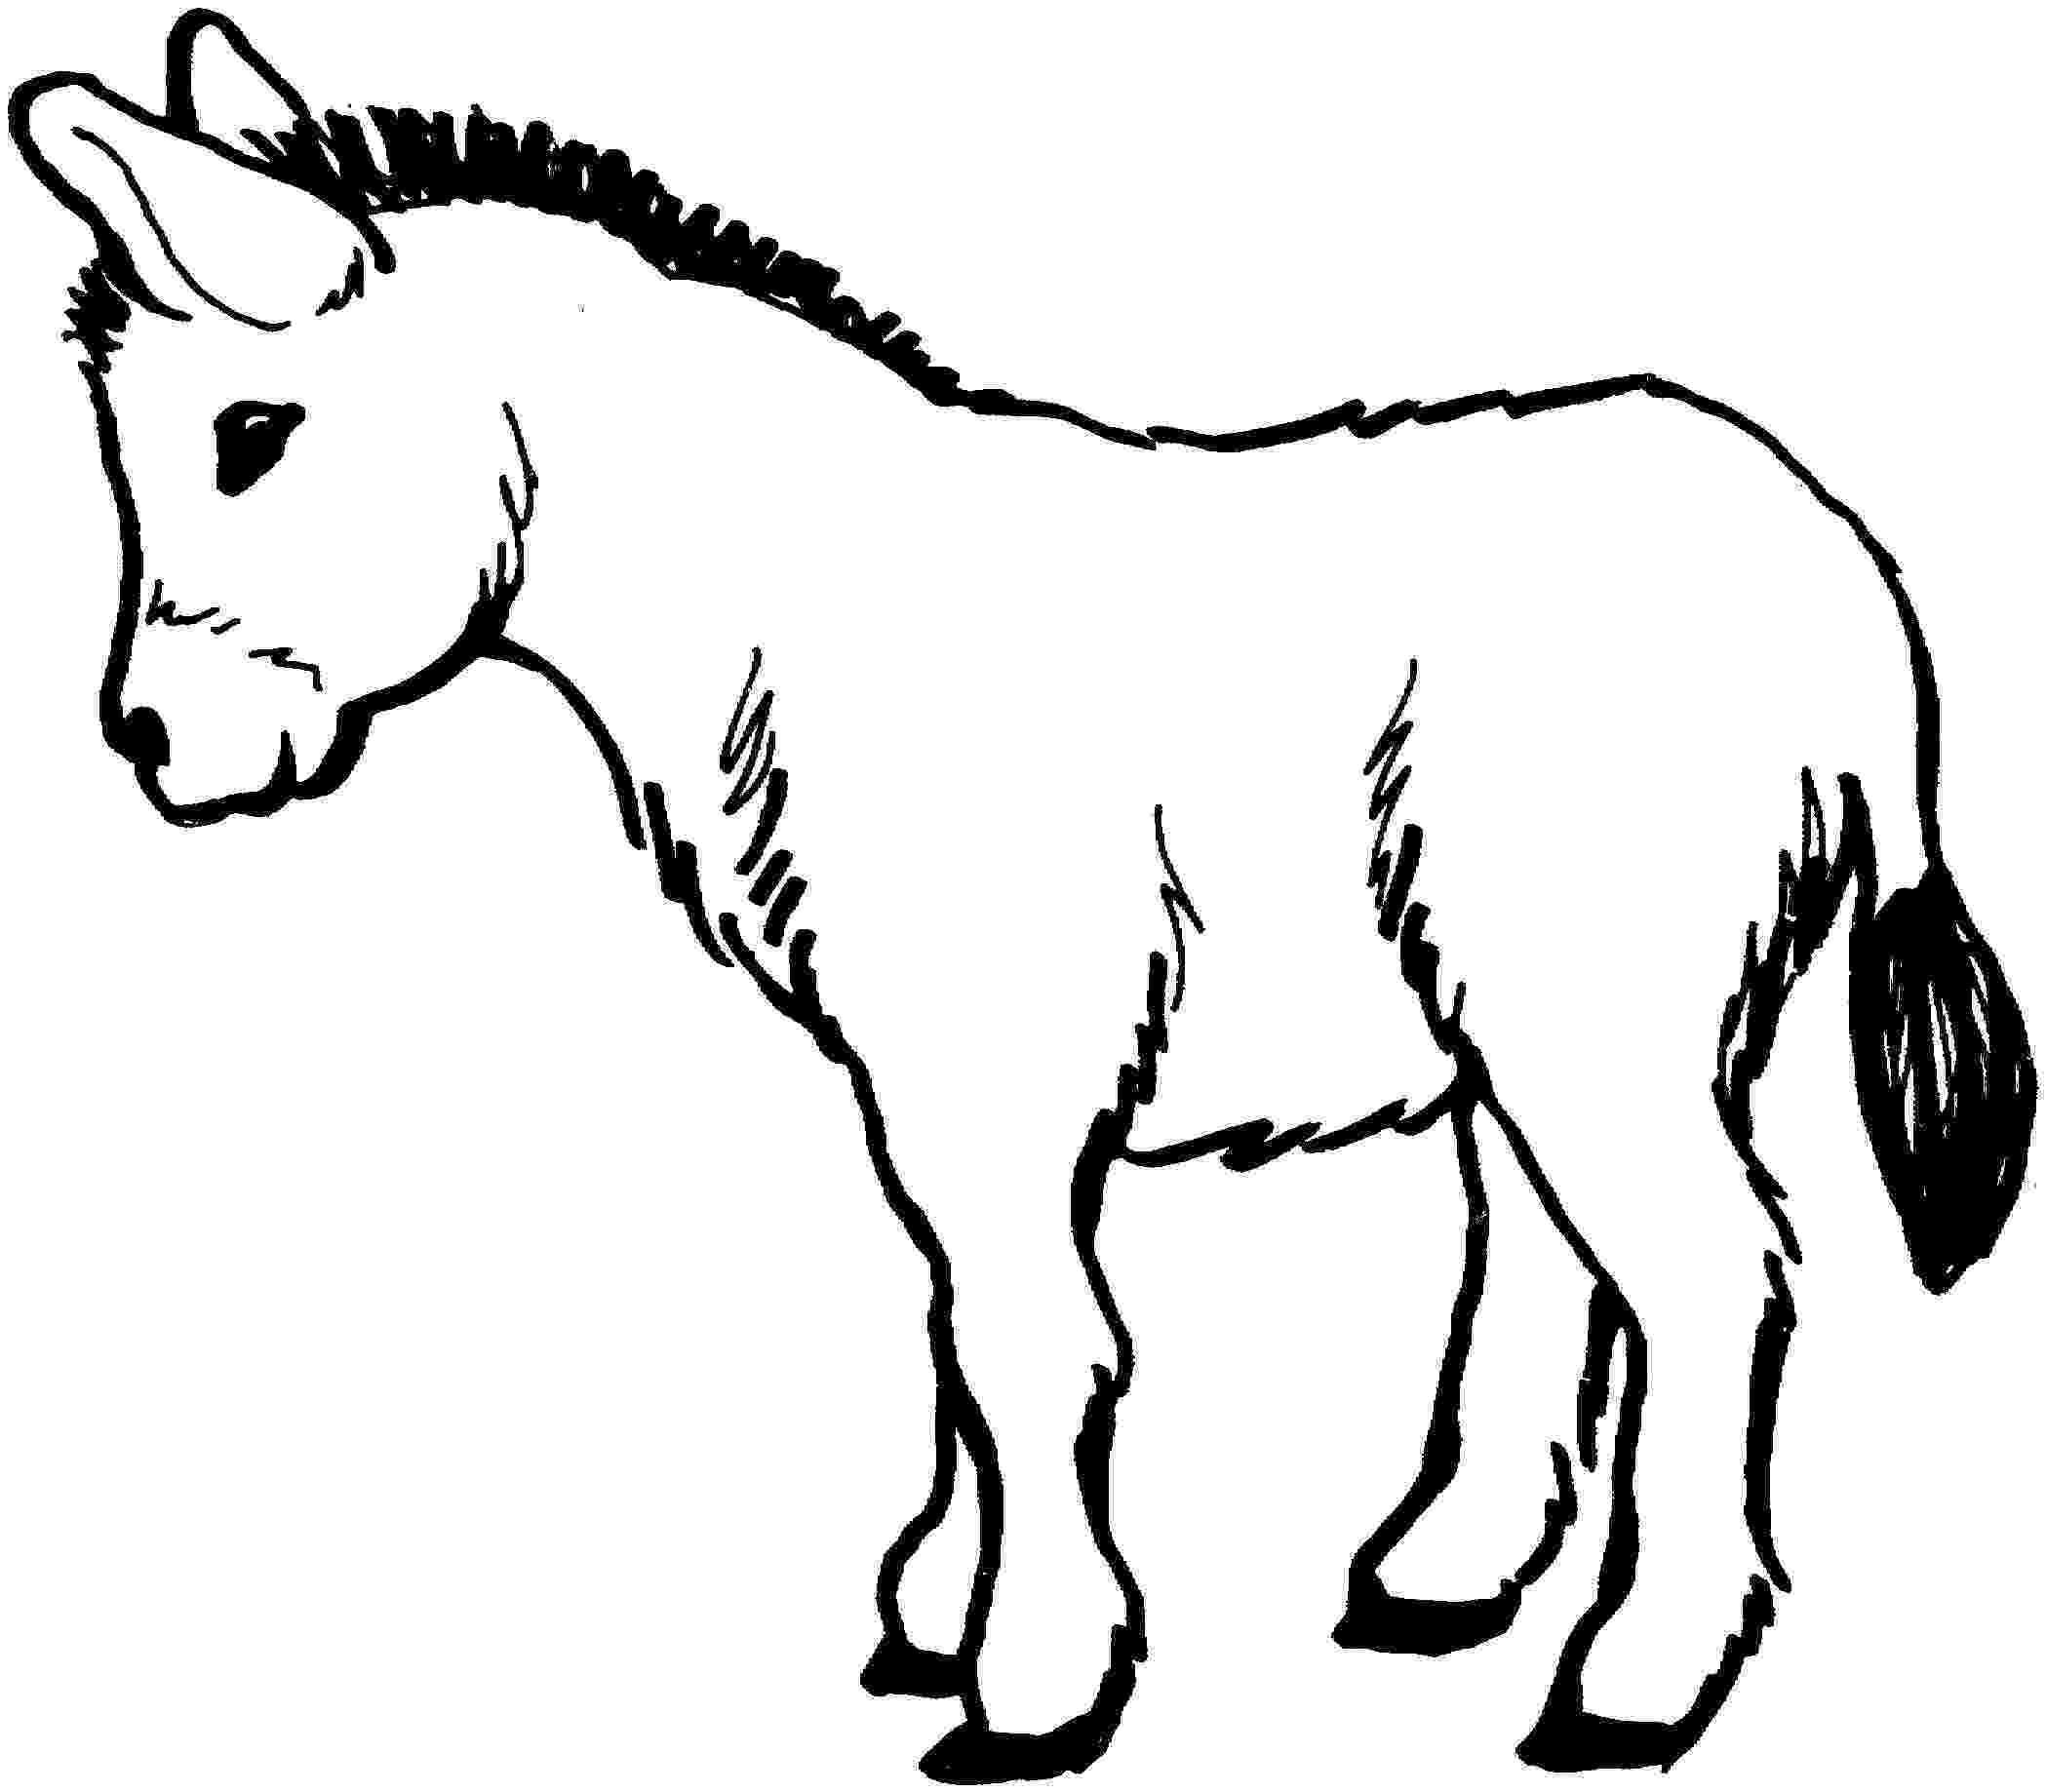 picture of a donkey to color donkey coloring pages kidsuki to a donkey color of picture